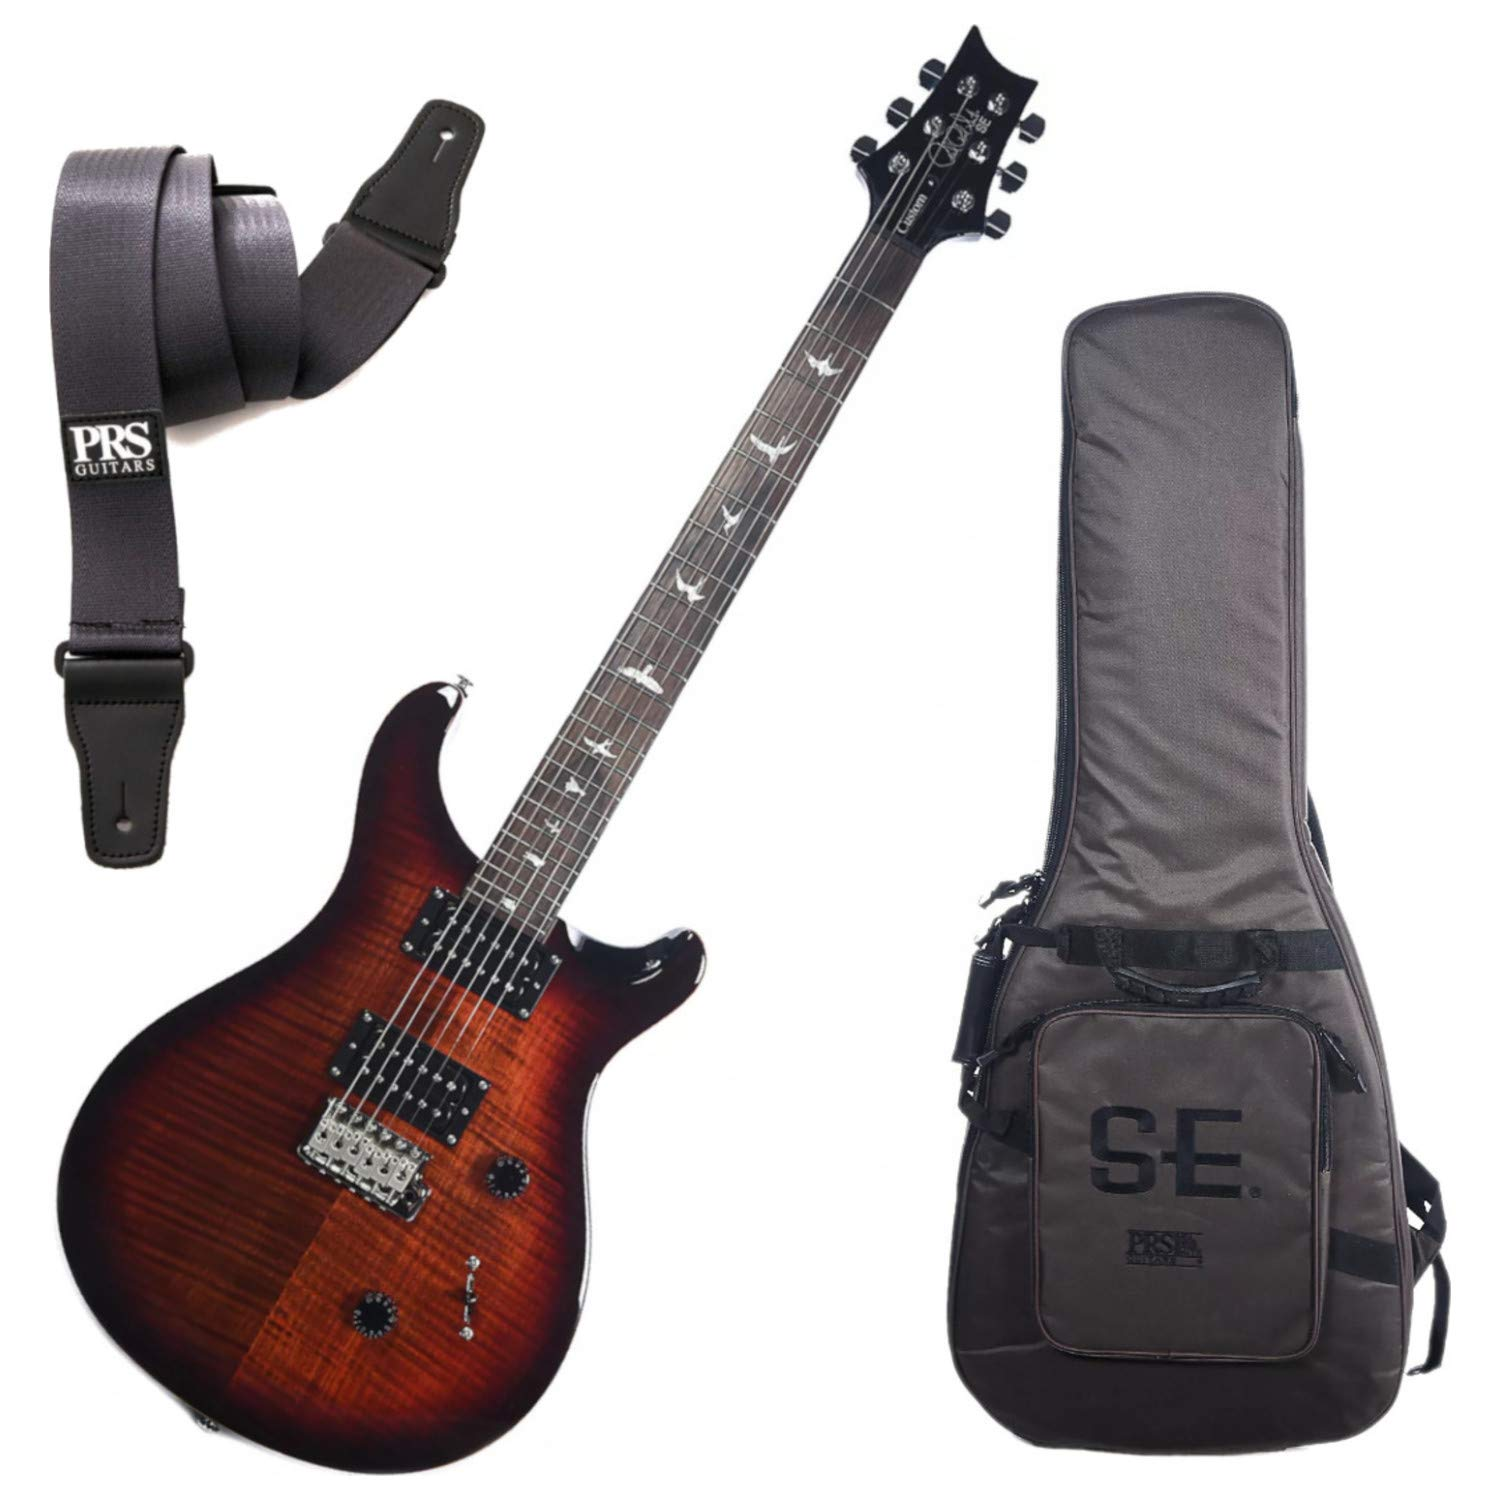 Cheap PRS Custom 24 Fire Red Burst Electric Guitar w/Soft Case and Strap Black Friday & Cyber Monday 2019